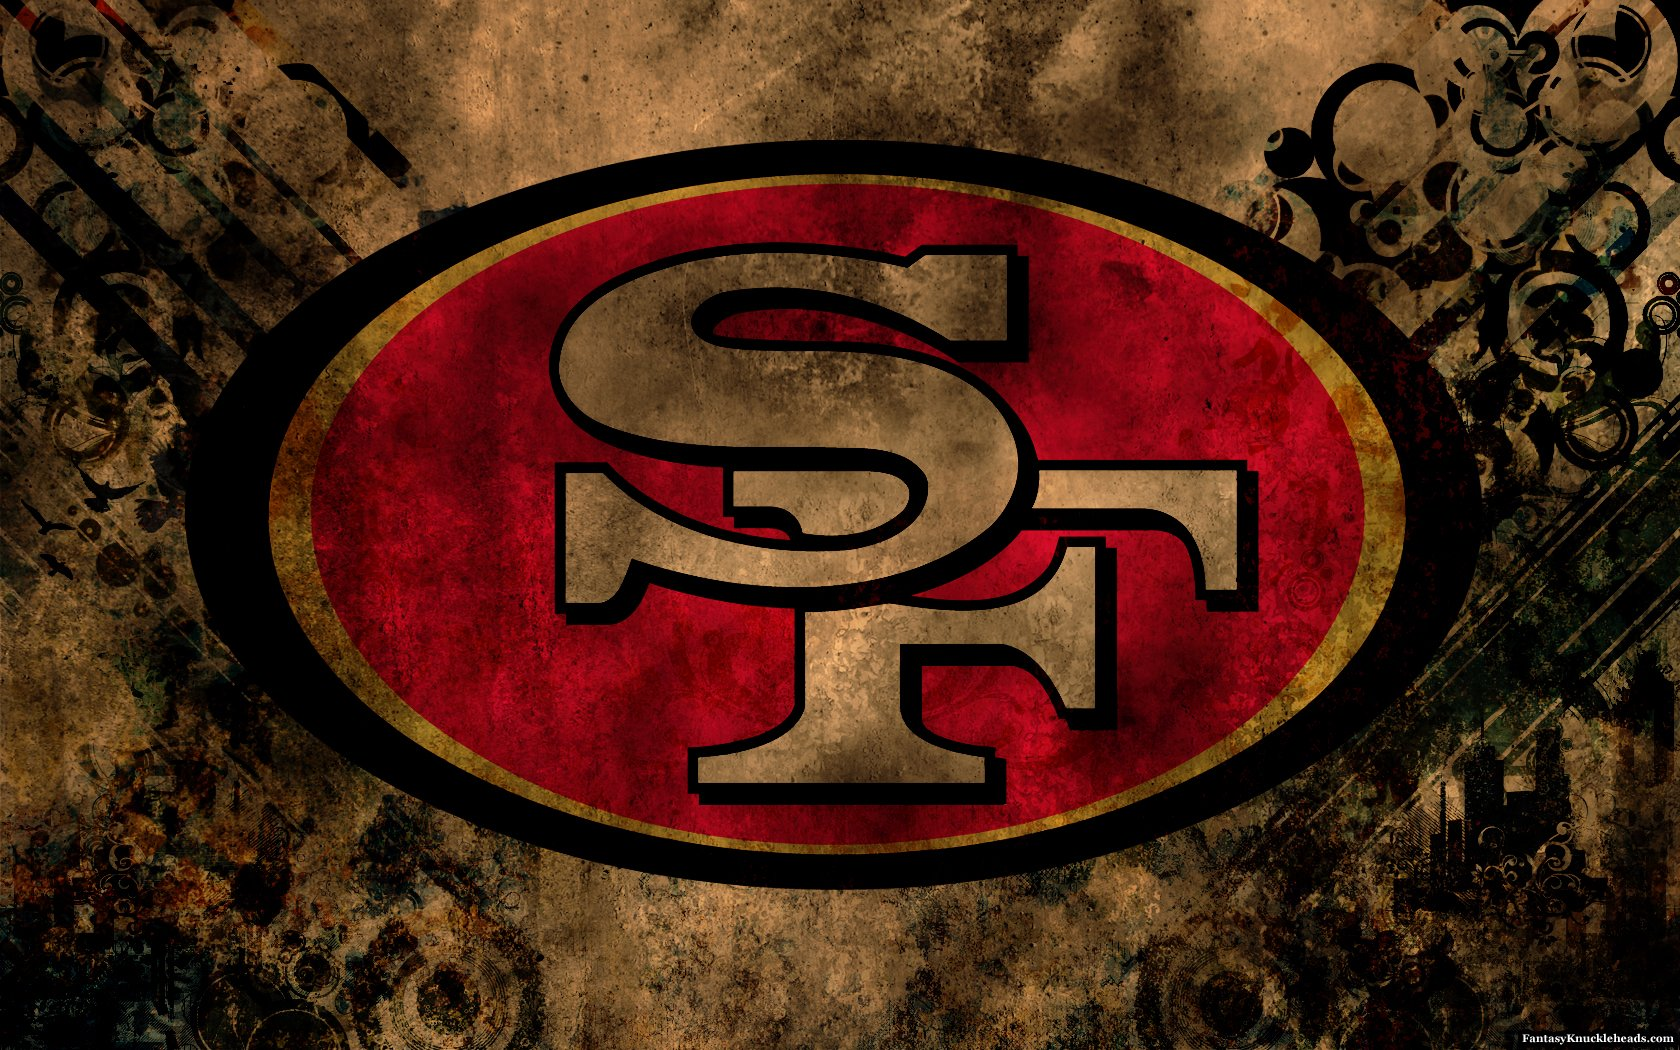 9e3bb4e4 44+] 49ERS HD Wallpaper on WallpaperSafari